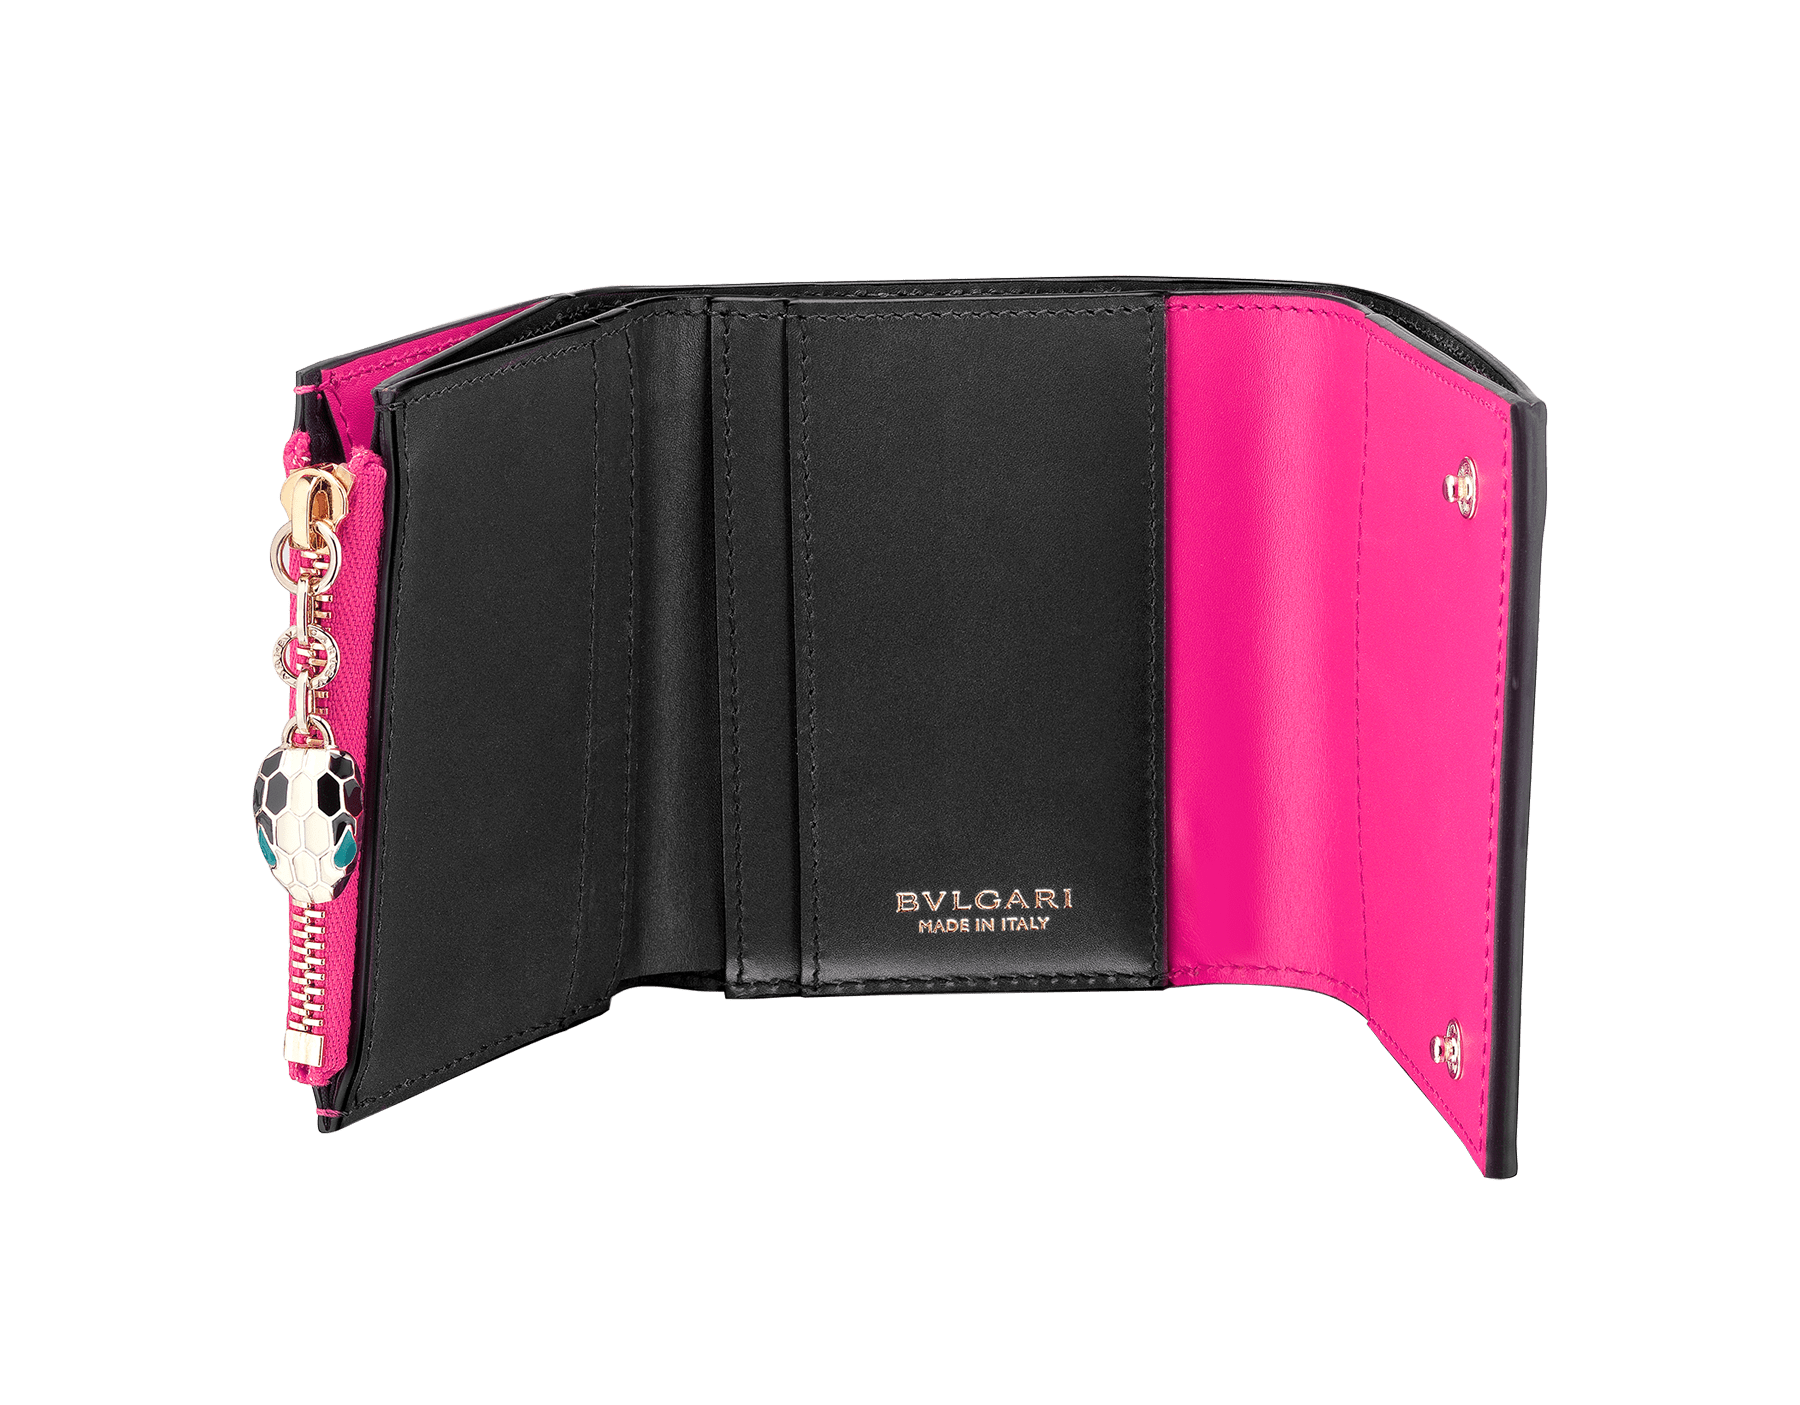 Serpenti Forever super compact wallet flash amethyst and black calf leather. Iconic snakehead zip puller in black and white enamel, with green malachite eyes. 288858 image 2